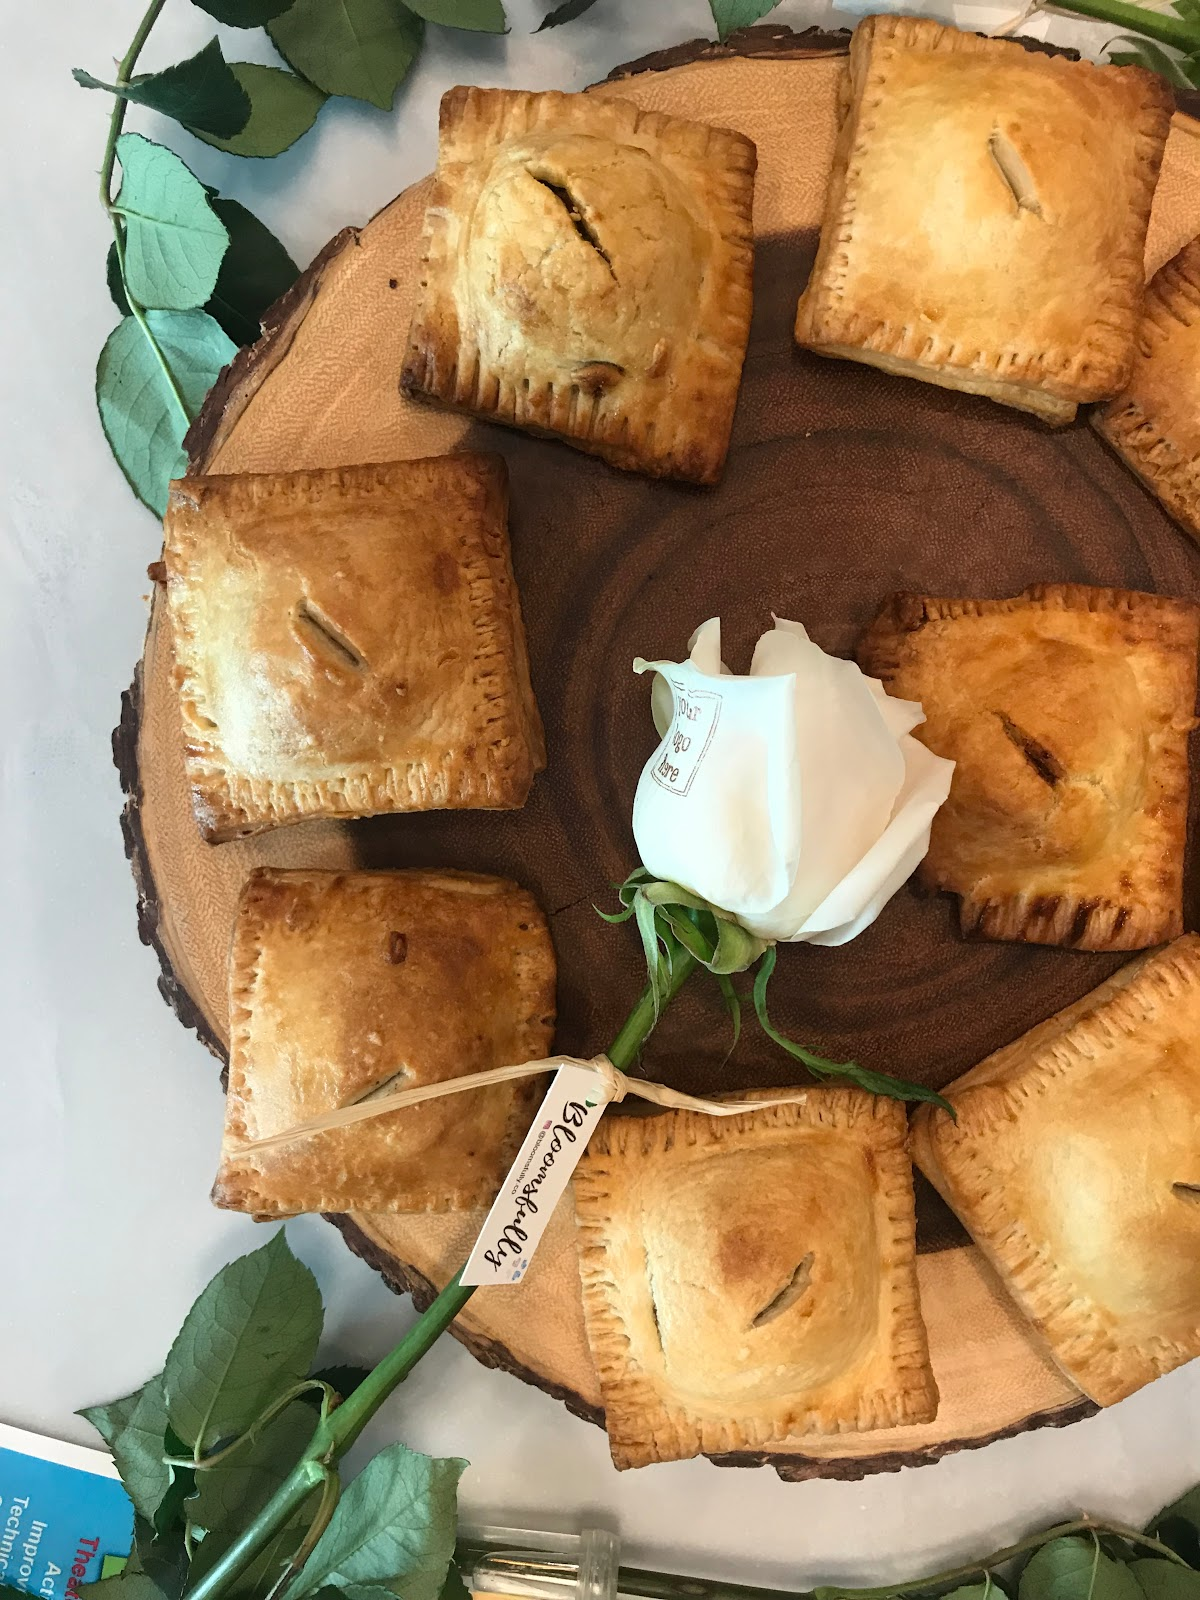 Our host, Nanndi's, handmade meat pies. And a customizable rose from our sponsor, Bloomsfully.